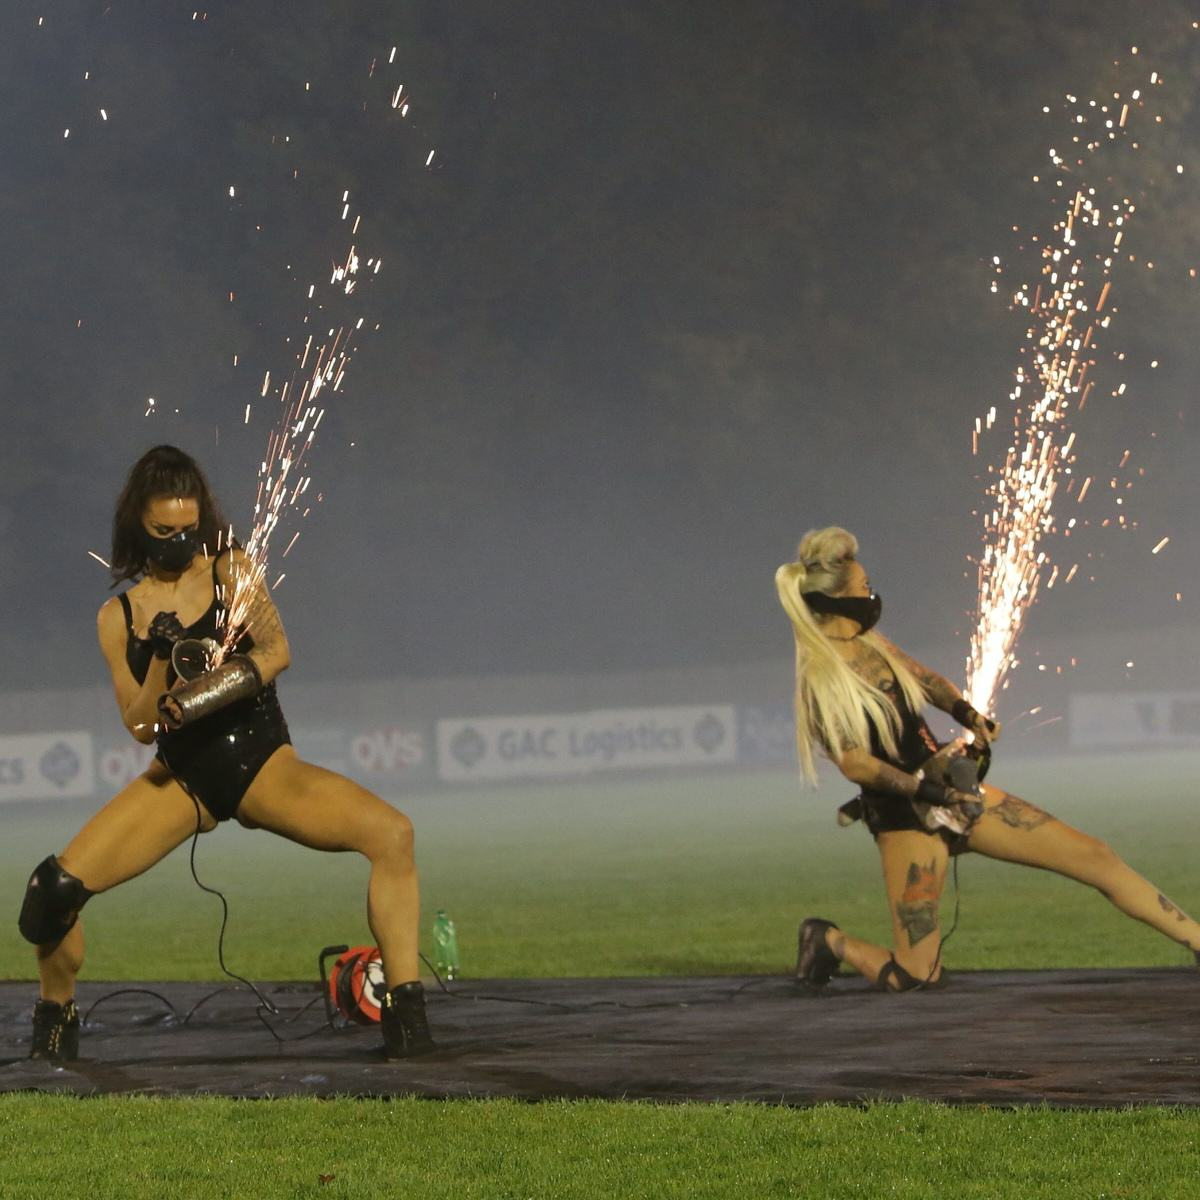 Mayor Hired Leather Clad Stunt Women For Family Bonfire Night Display UNILAD SWNS SPARKS 0208355